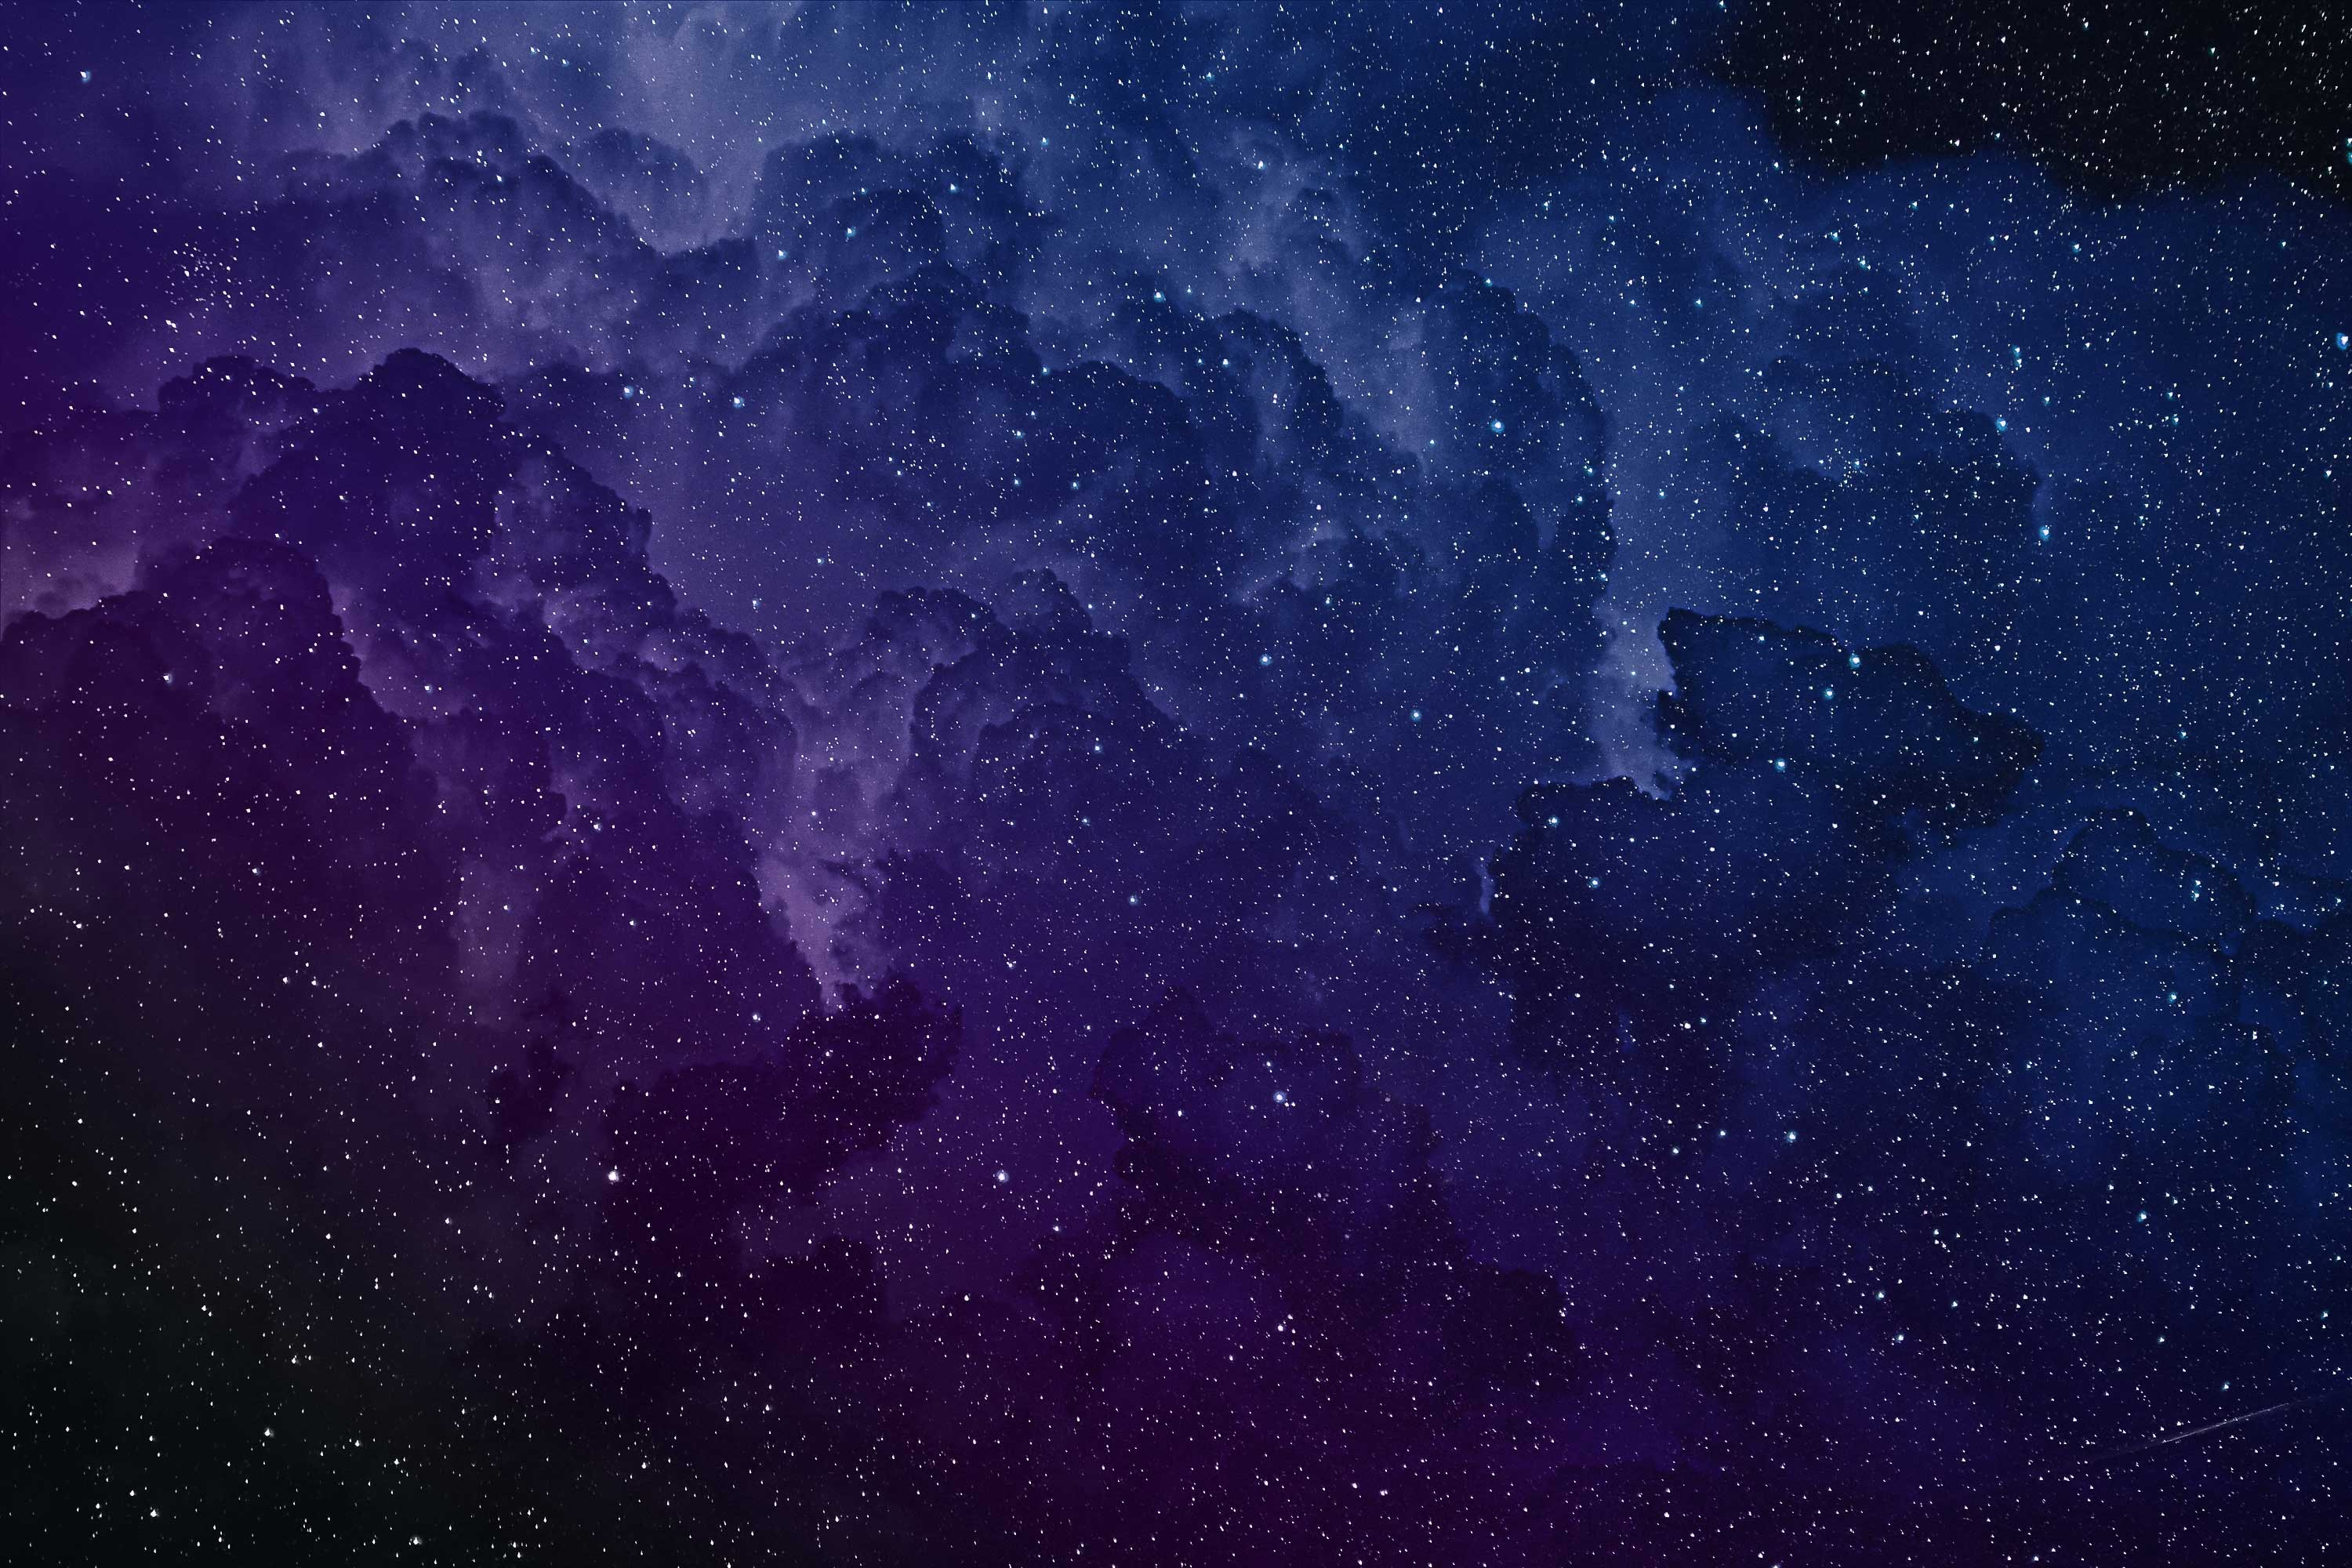 Space Background Starfield Texture